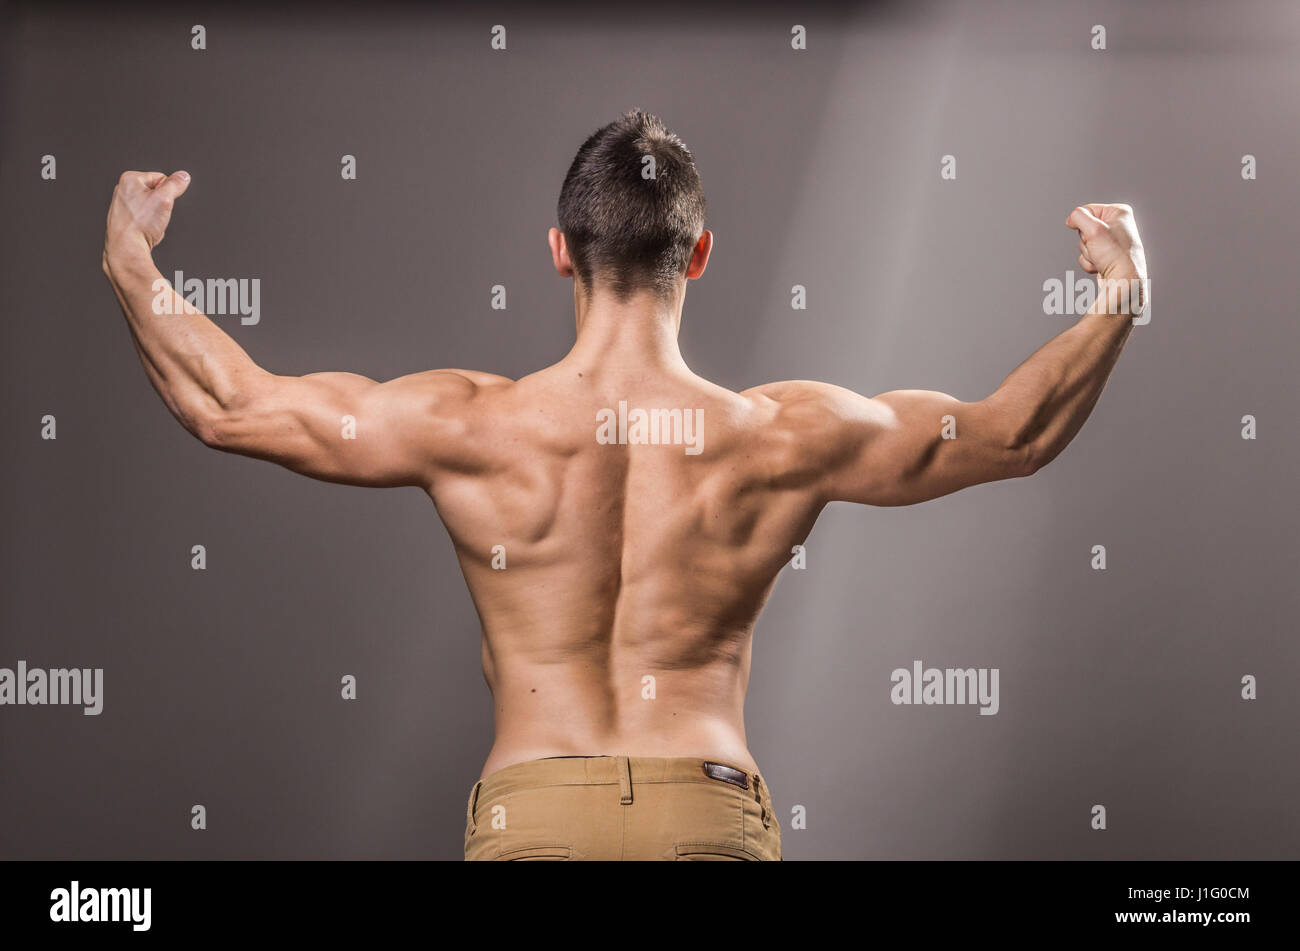 Rear View Back Muscles Bodybuilder Stock Photos Rear View Back